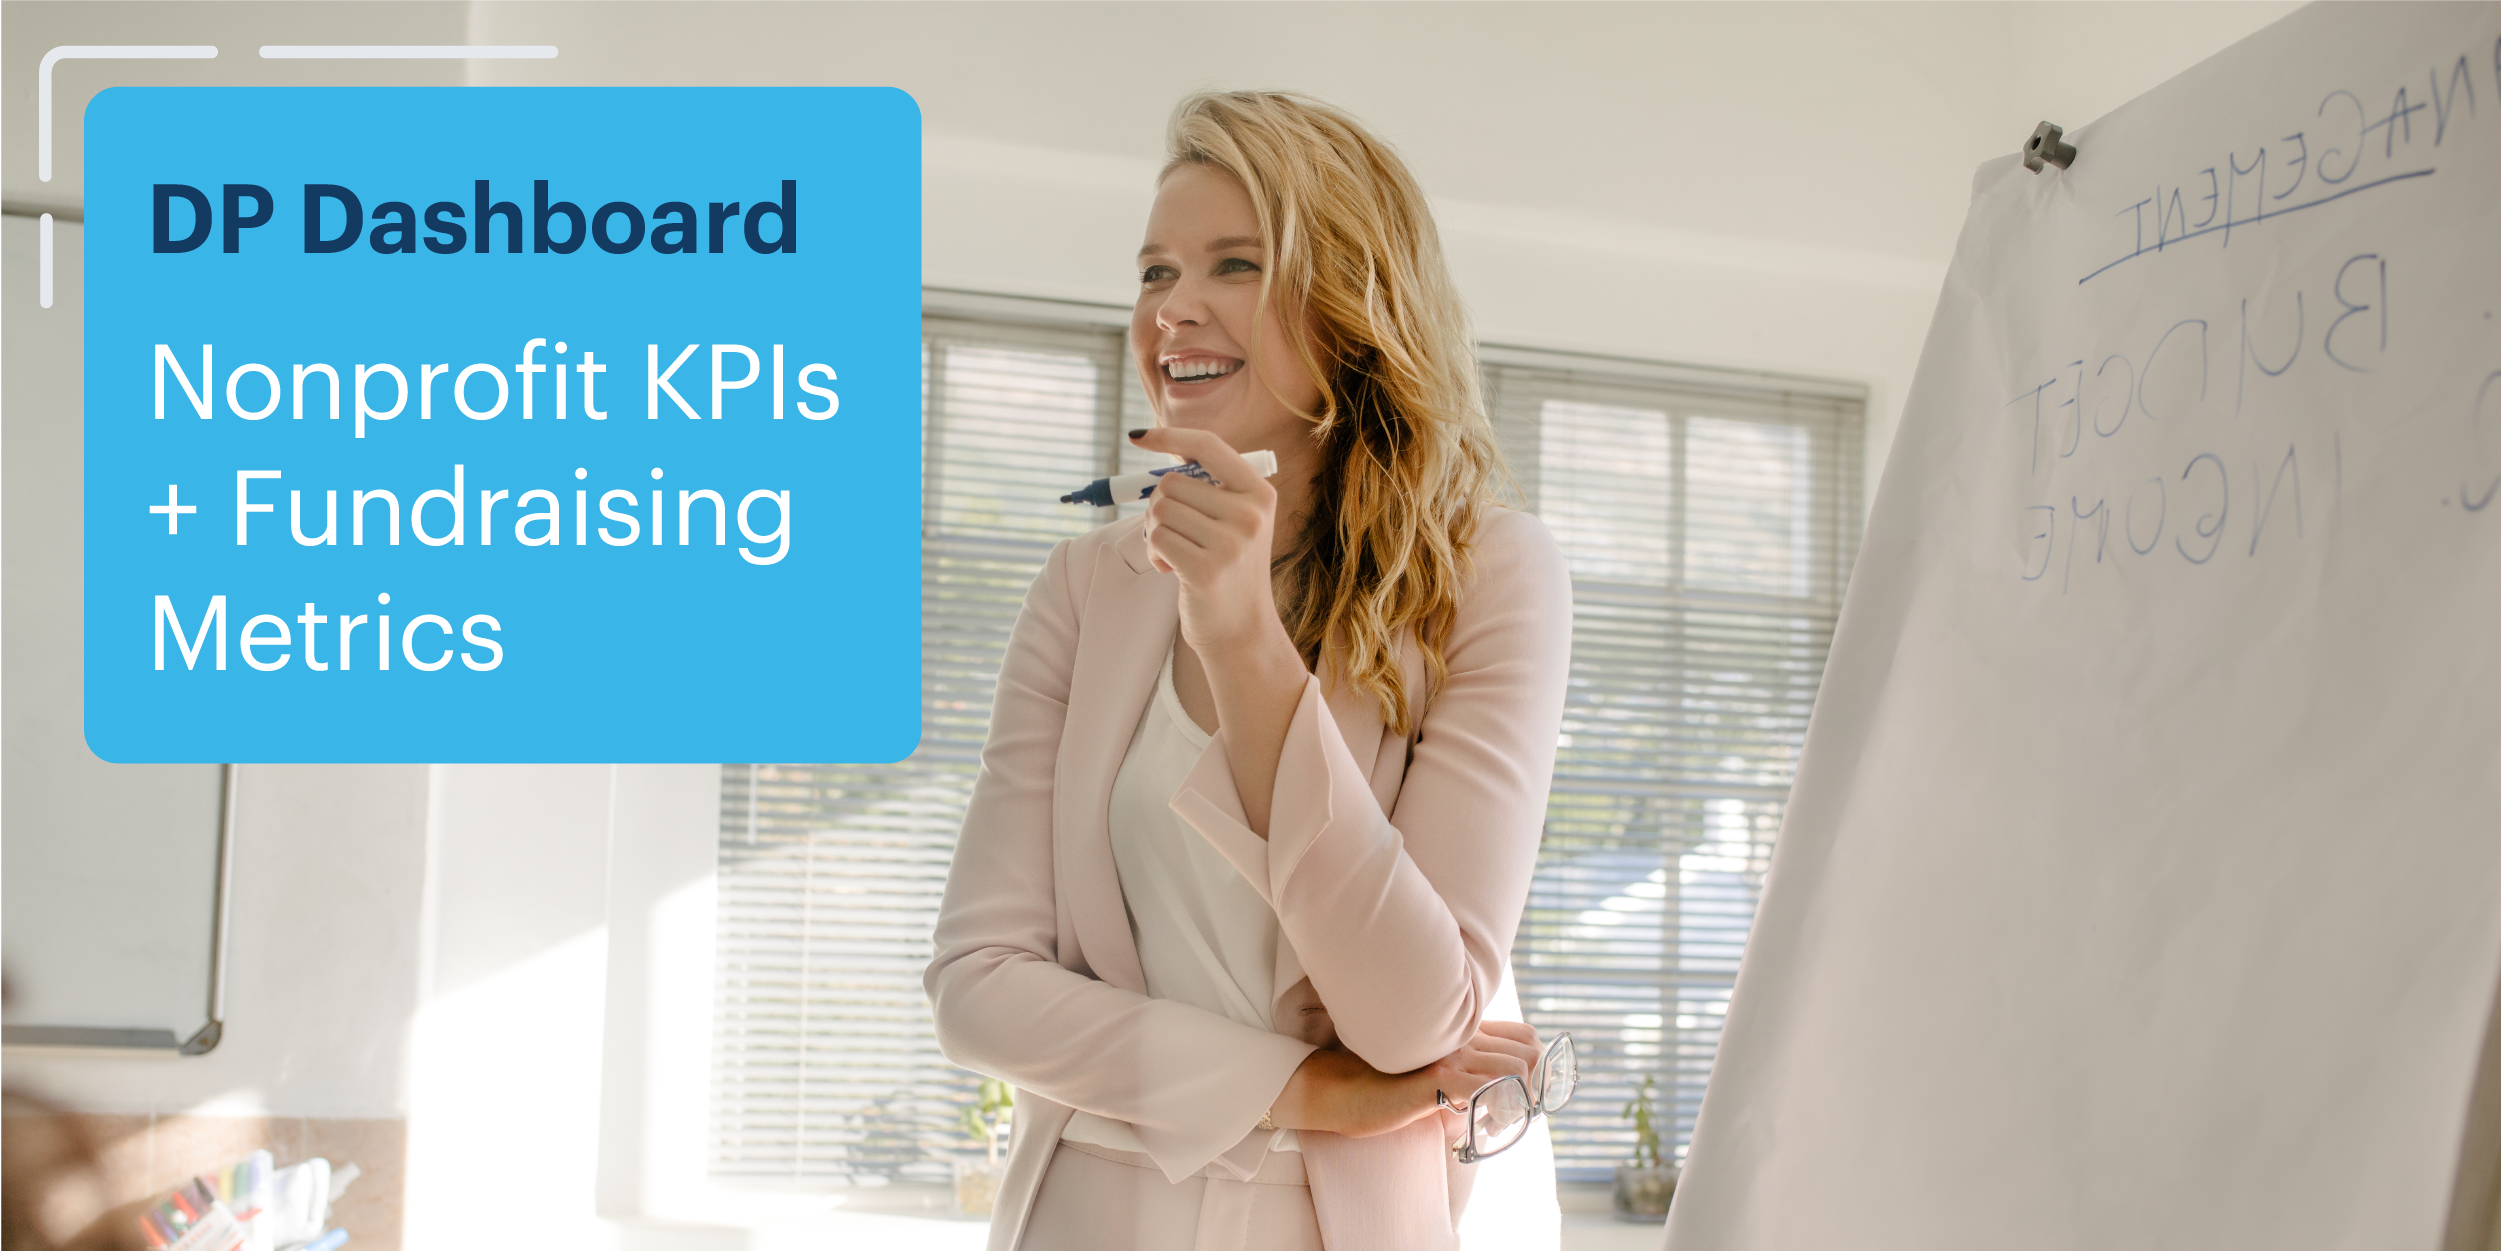 DonorPerfect's Fundraising Metrics Dashboard helps development directors and fundraisers to track essential nonprofit KPIs.